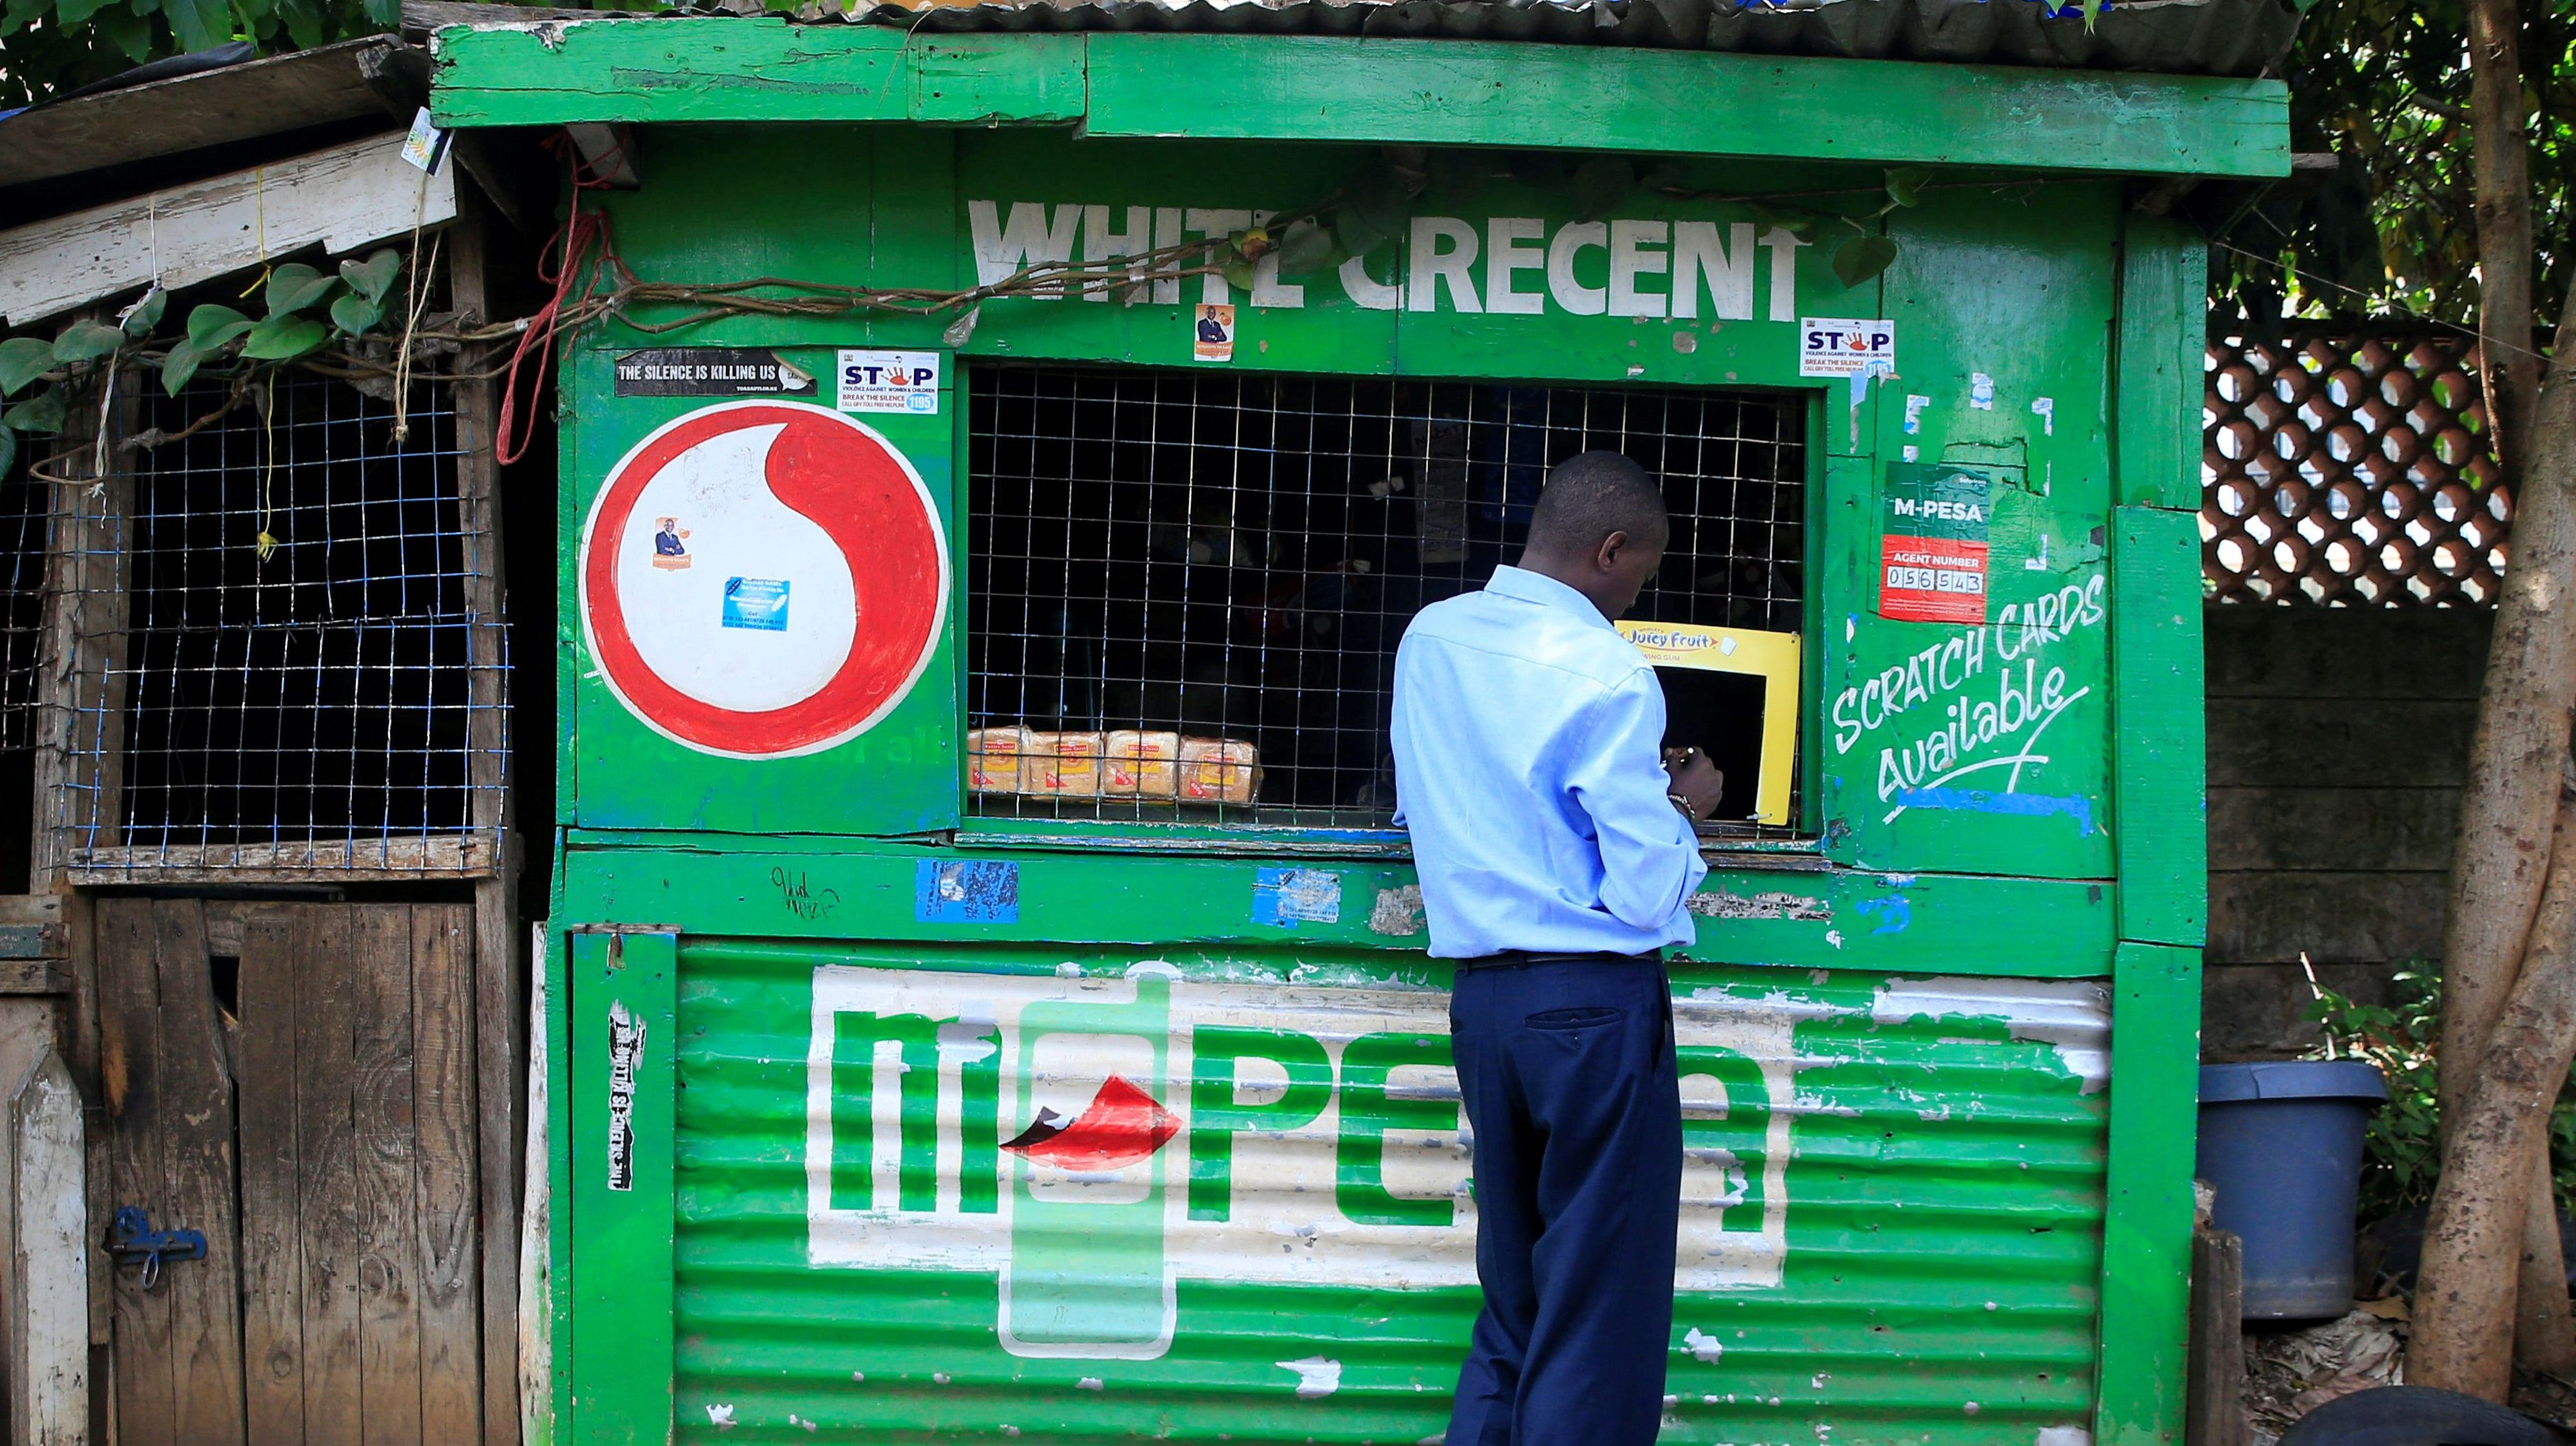 Western Union in mobile money deal with Safaricom's MPesa